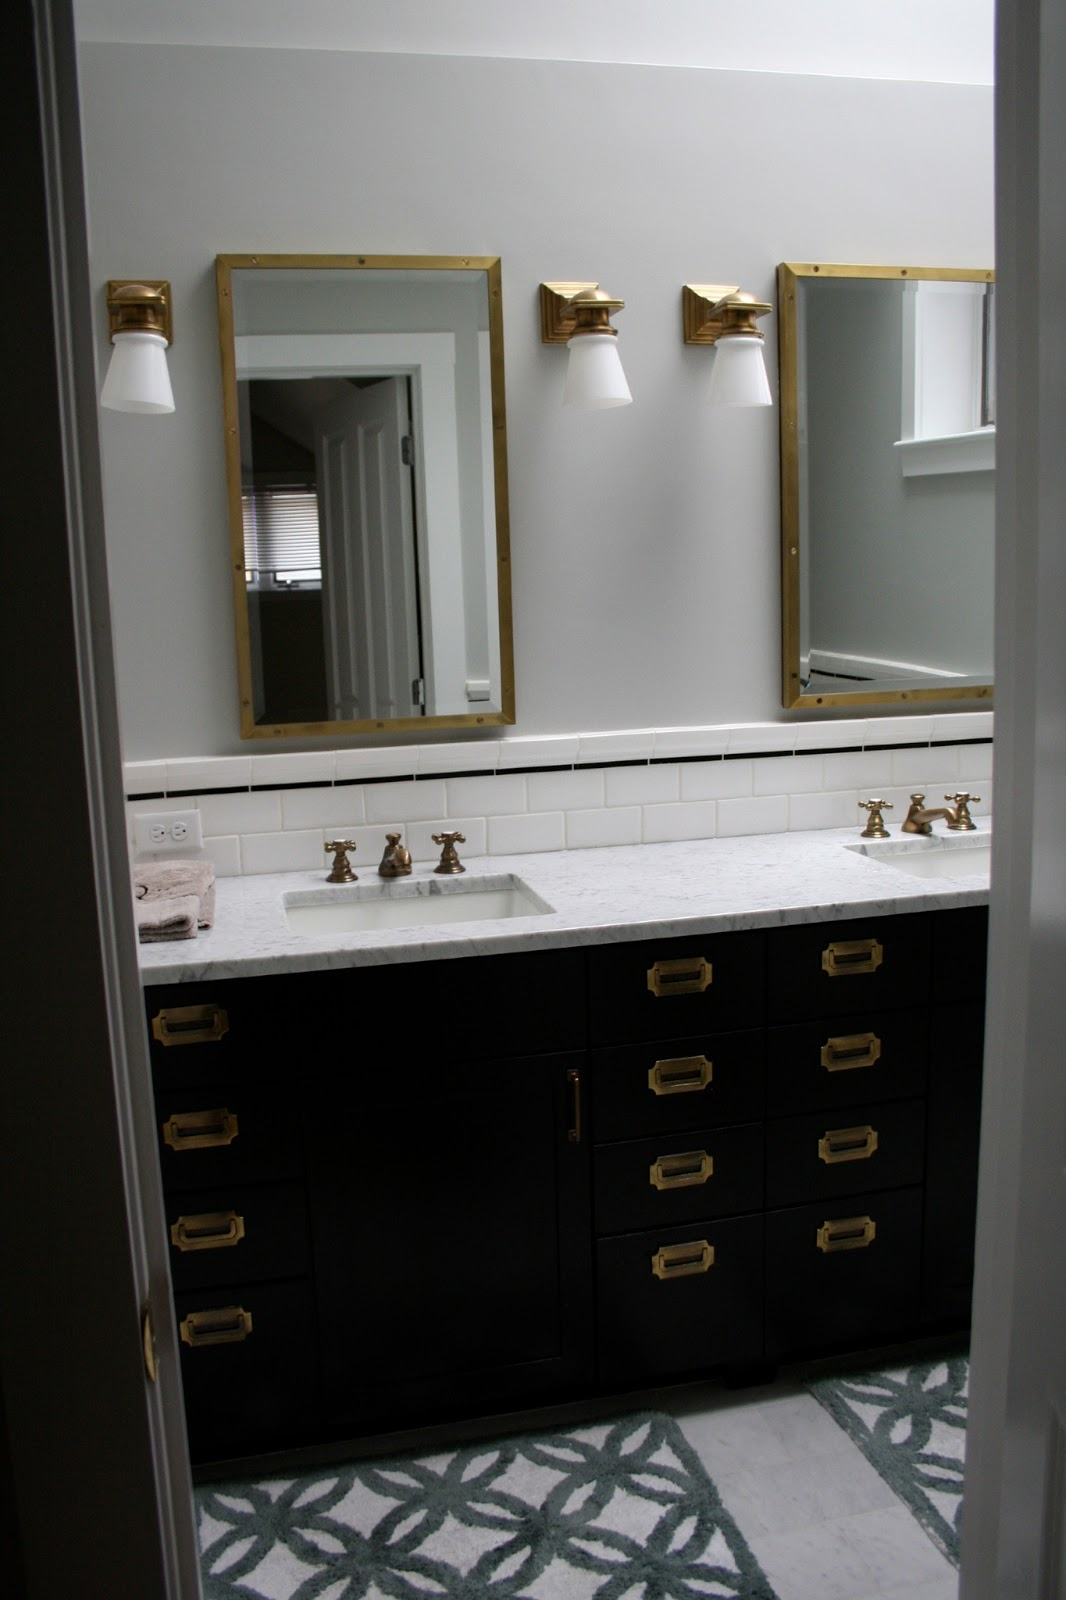 Charmant I Wanted A 1920u0027s Feel And Shelly Van Rozeboom Helped Make My Vision Come  To Life. I Love The Antique Brass Medicine Cabinets, Lights, Faucets, ...